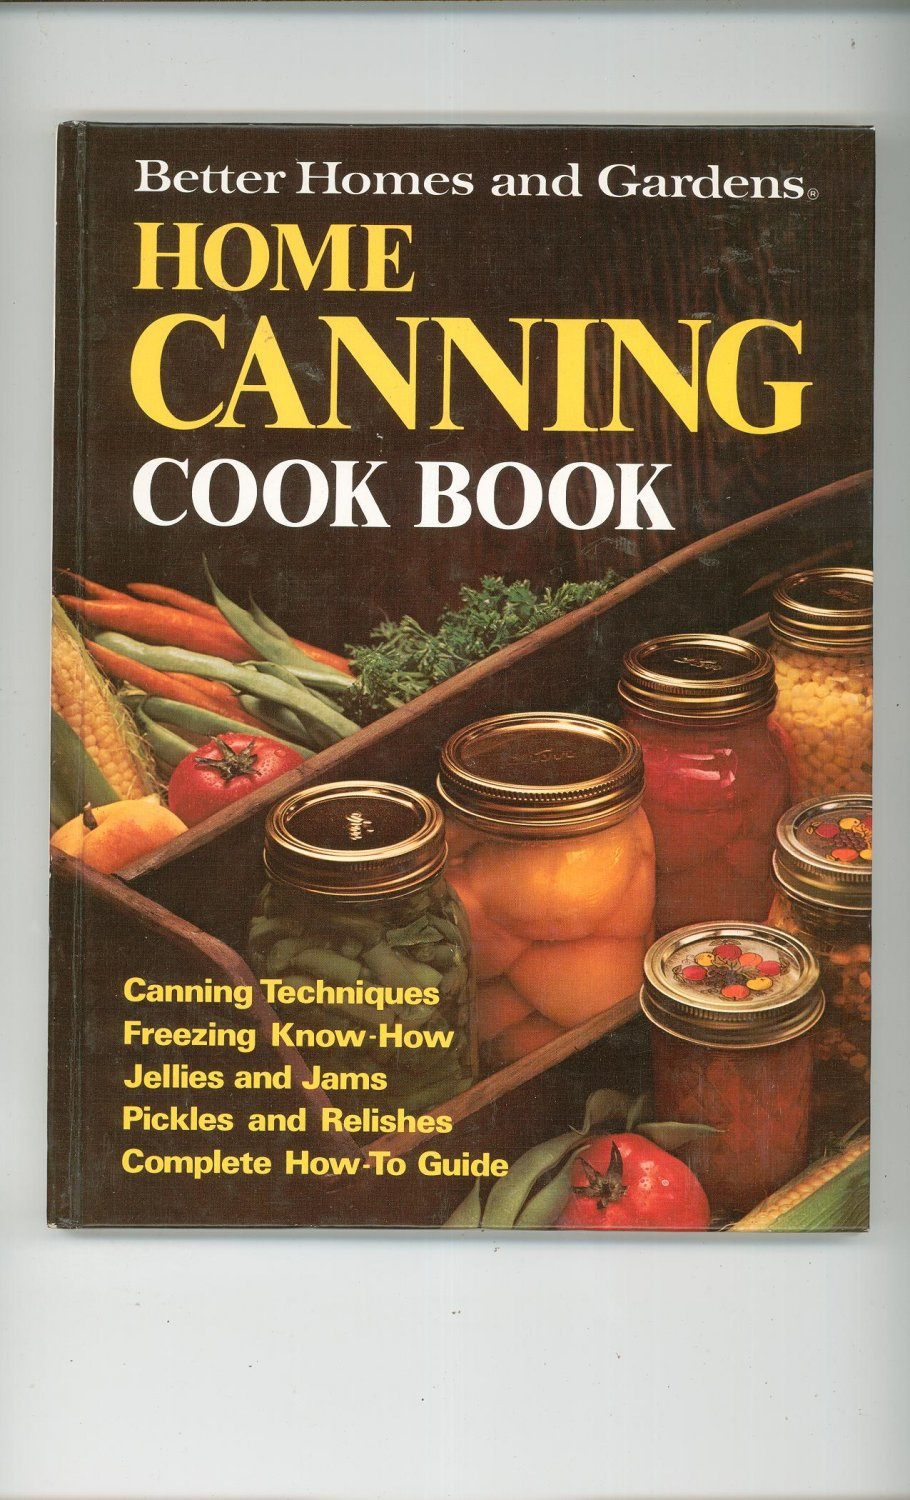 Better Homes & Gardens Home Canning Cook Book Cookbook 696006308 First Edition